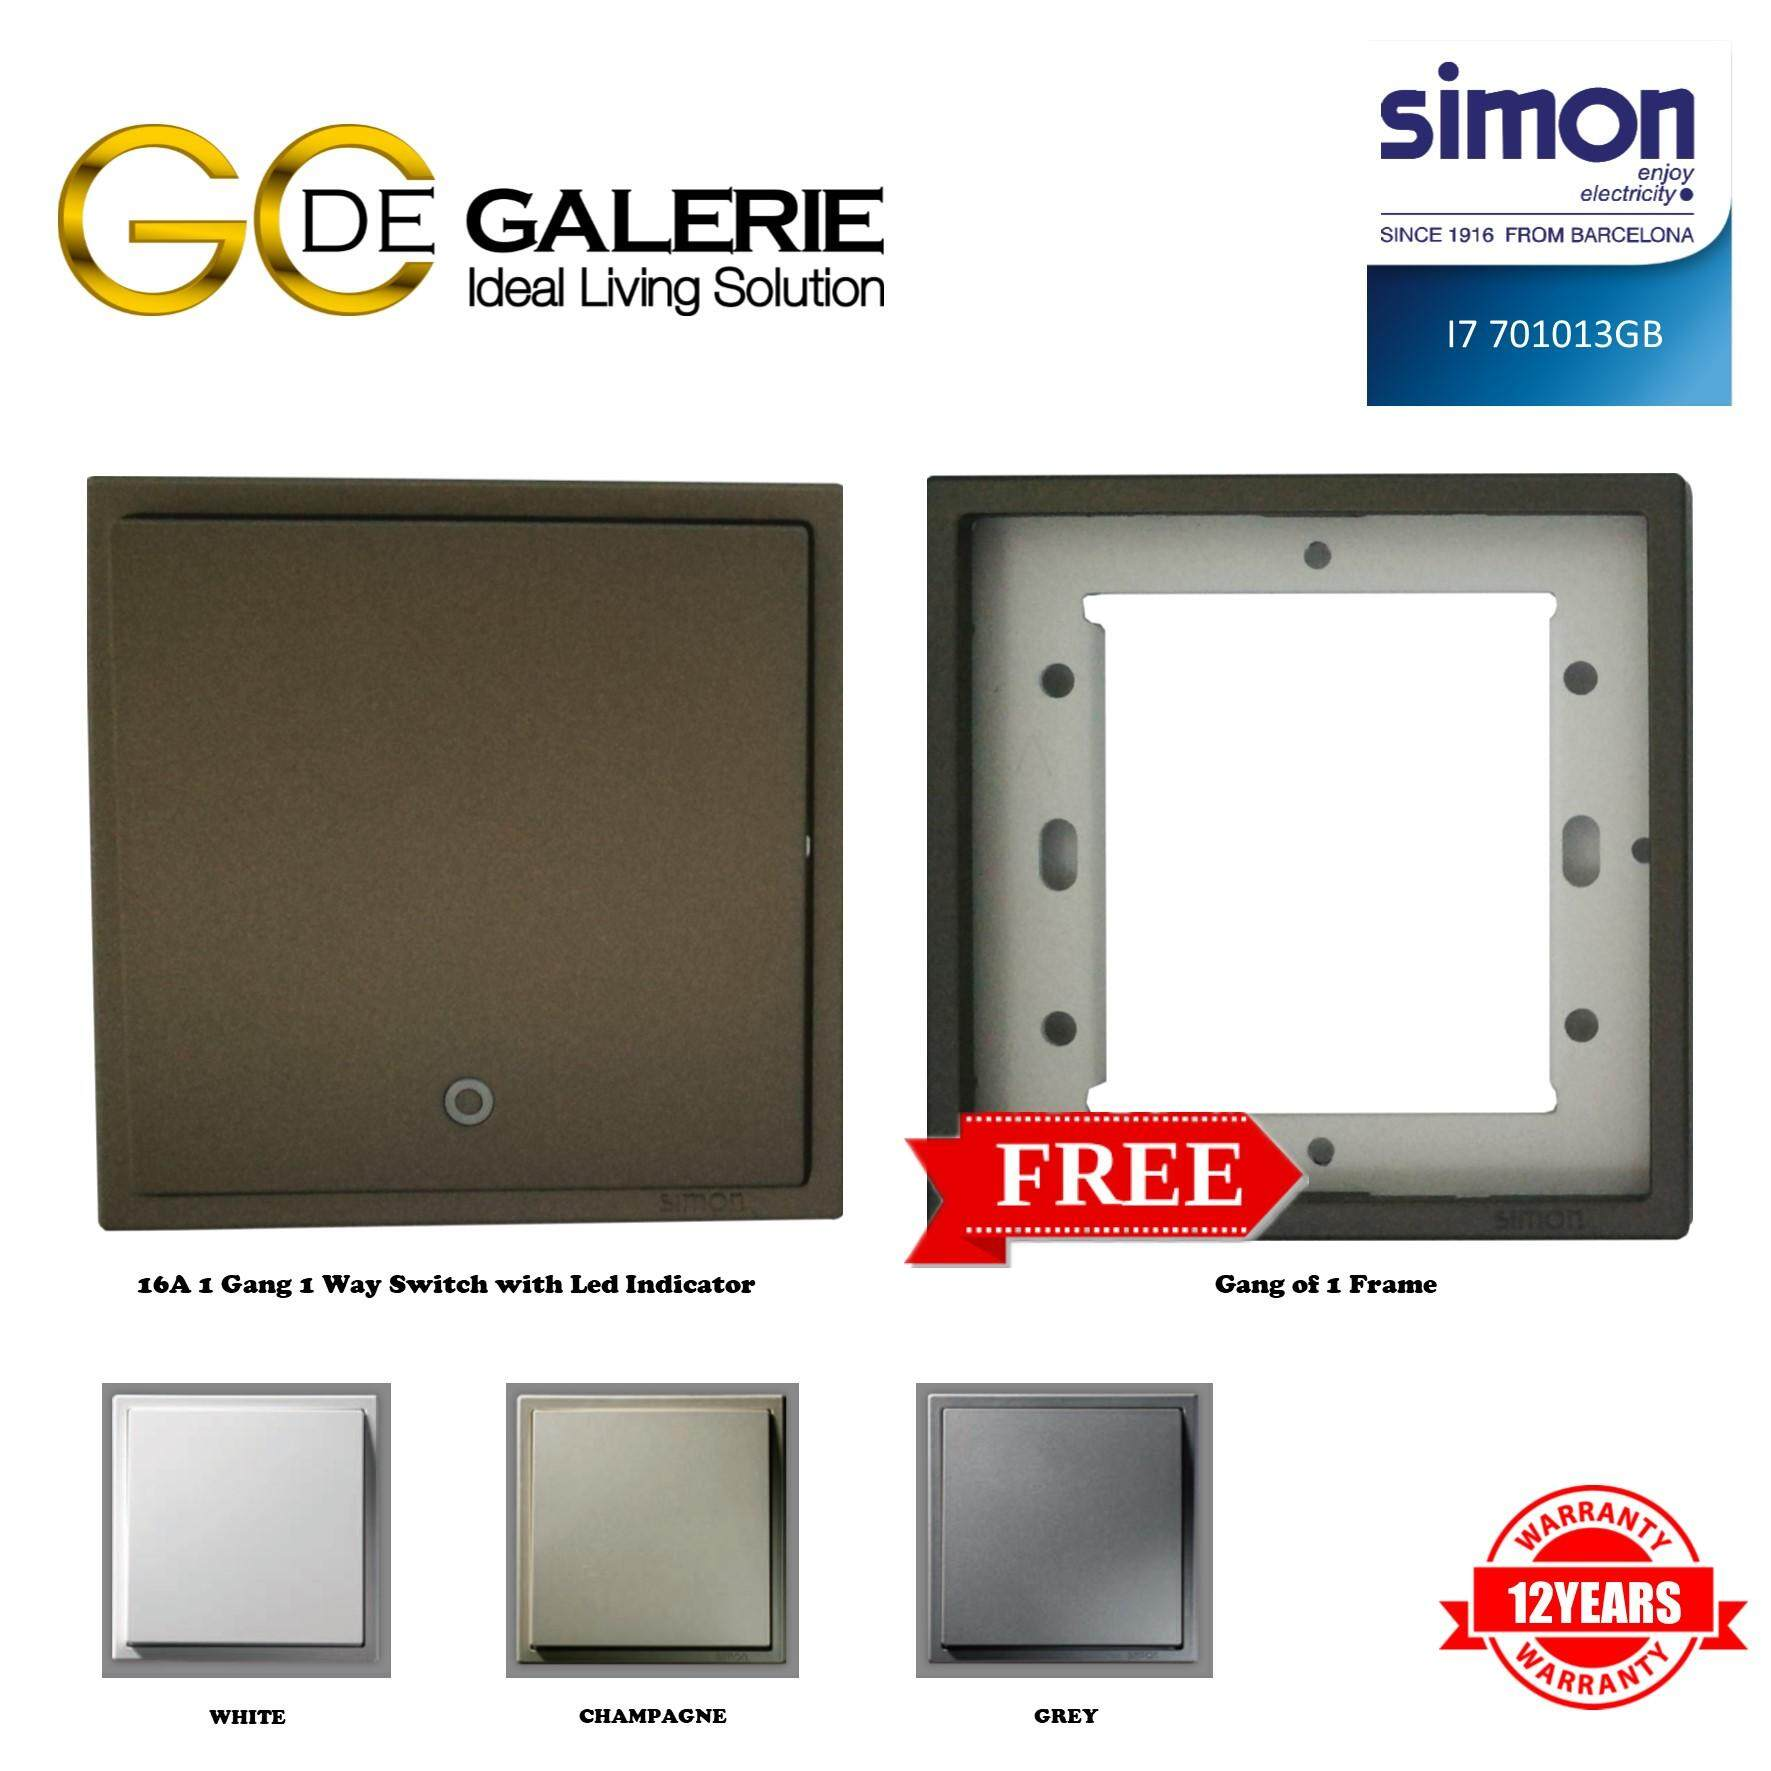 SIMON i7 SERIES 701013 1 GANG 1 WAY SWITCH WITH LED INDICATOR GRAPHITE BLACK FREE 1 GANG FRAME